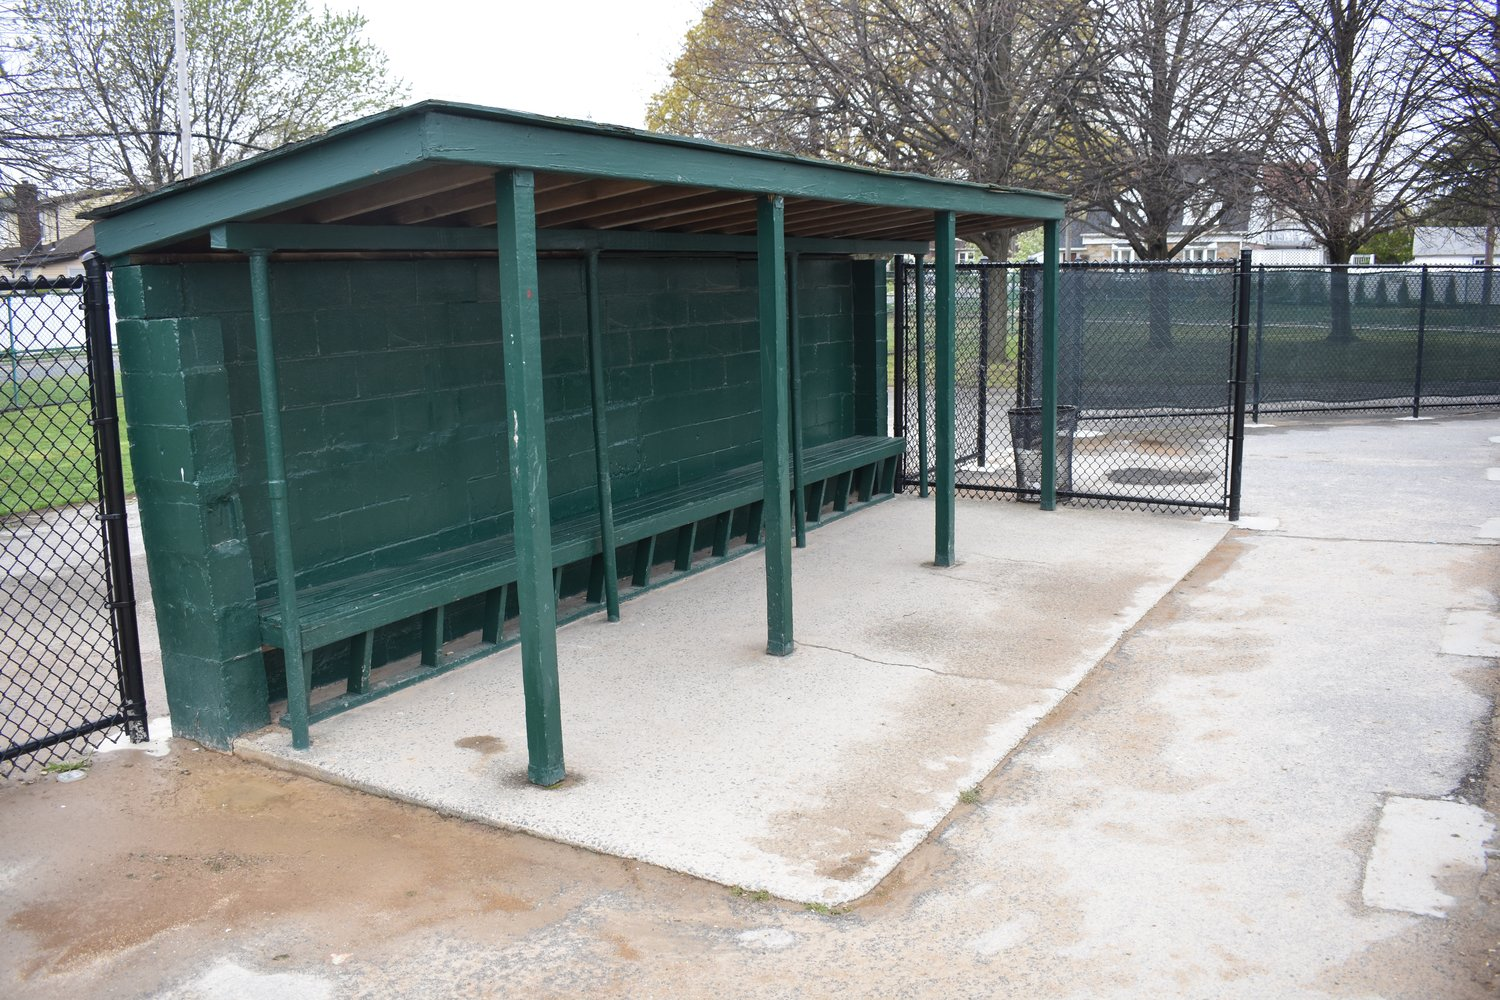 Mayor Francis X. Murray said the village may be able to upgrade the dugouts at Barasch Field next year.